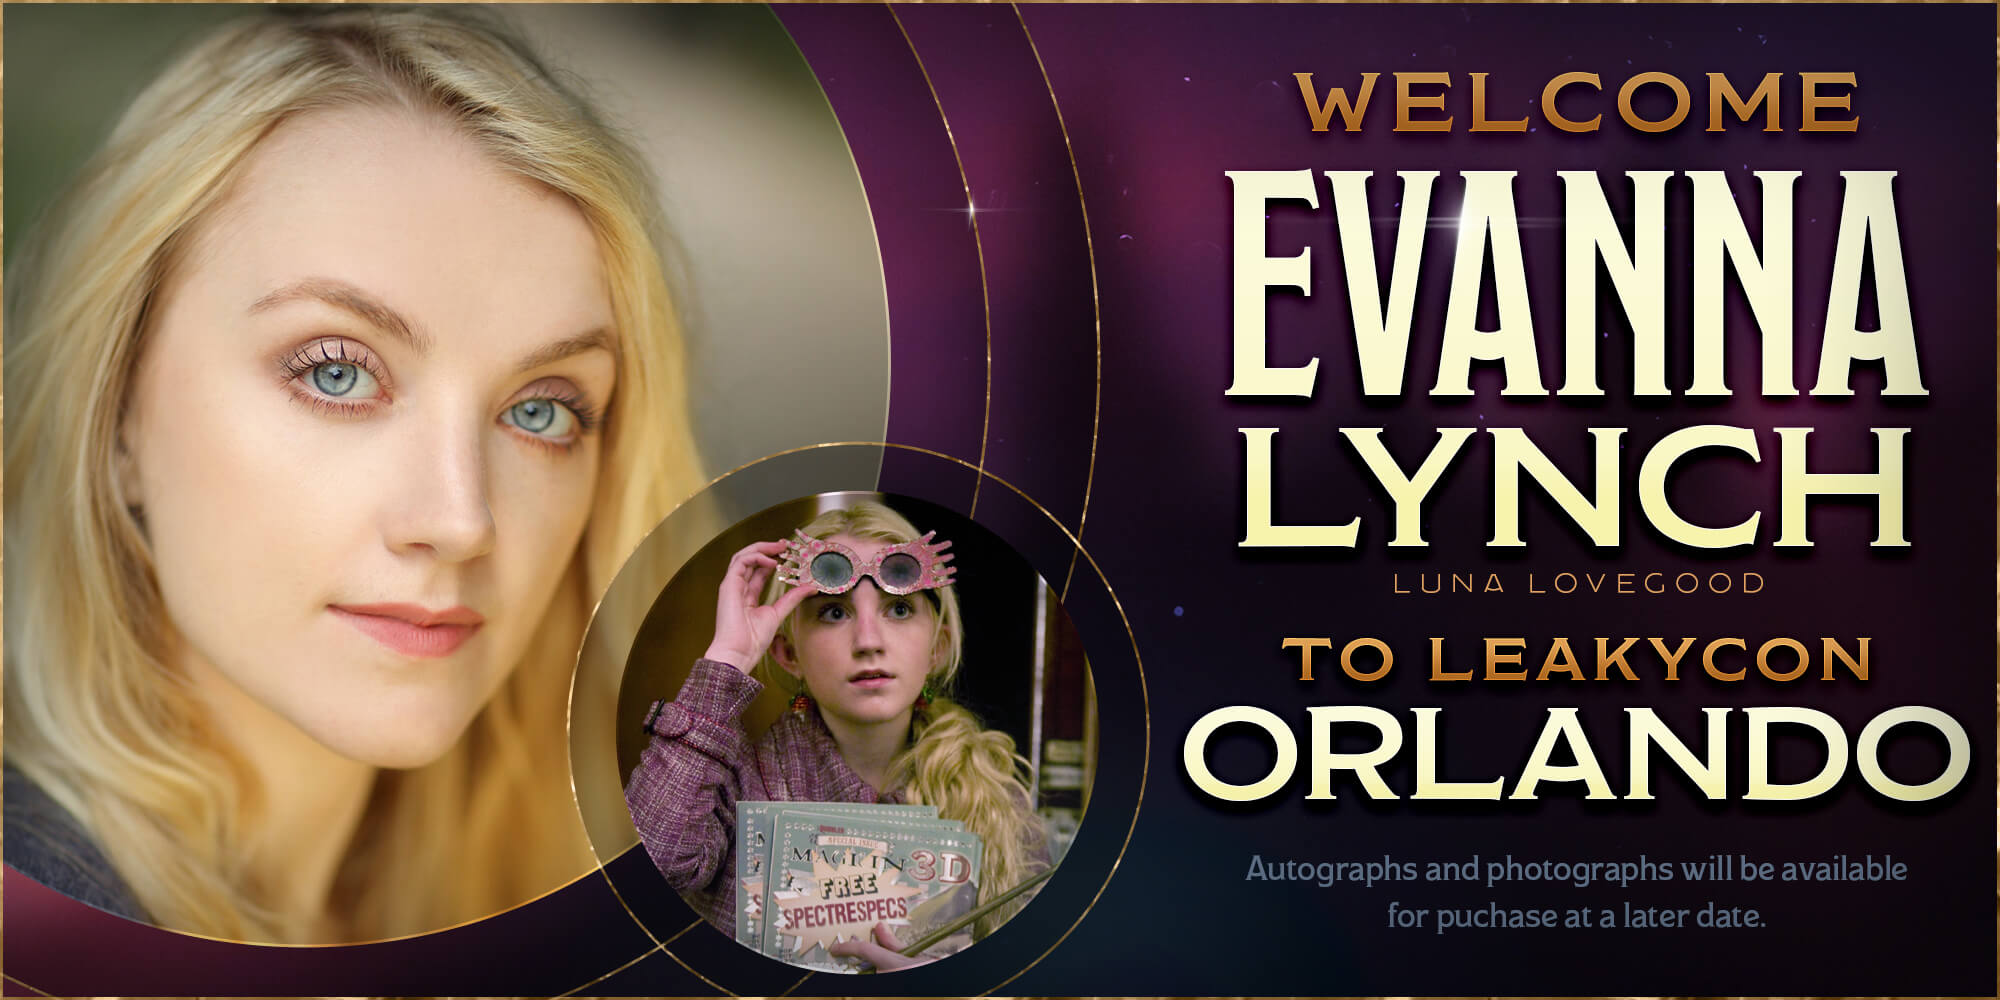 Welcome Evanna Lynch to Leakycon Orlando!